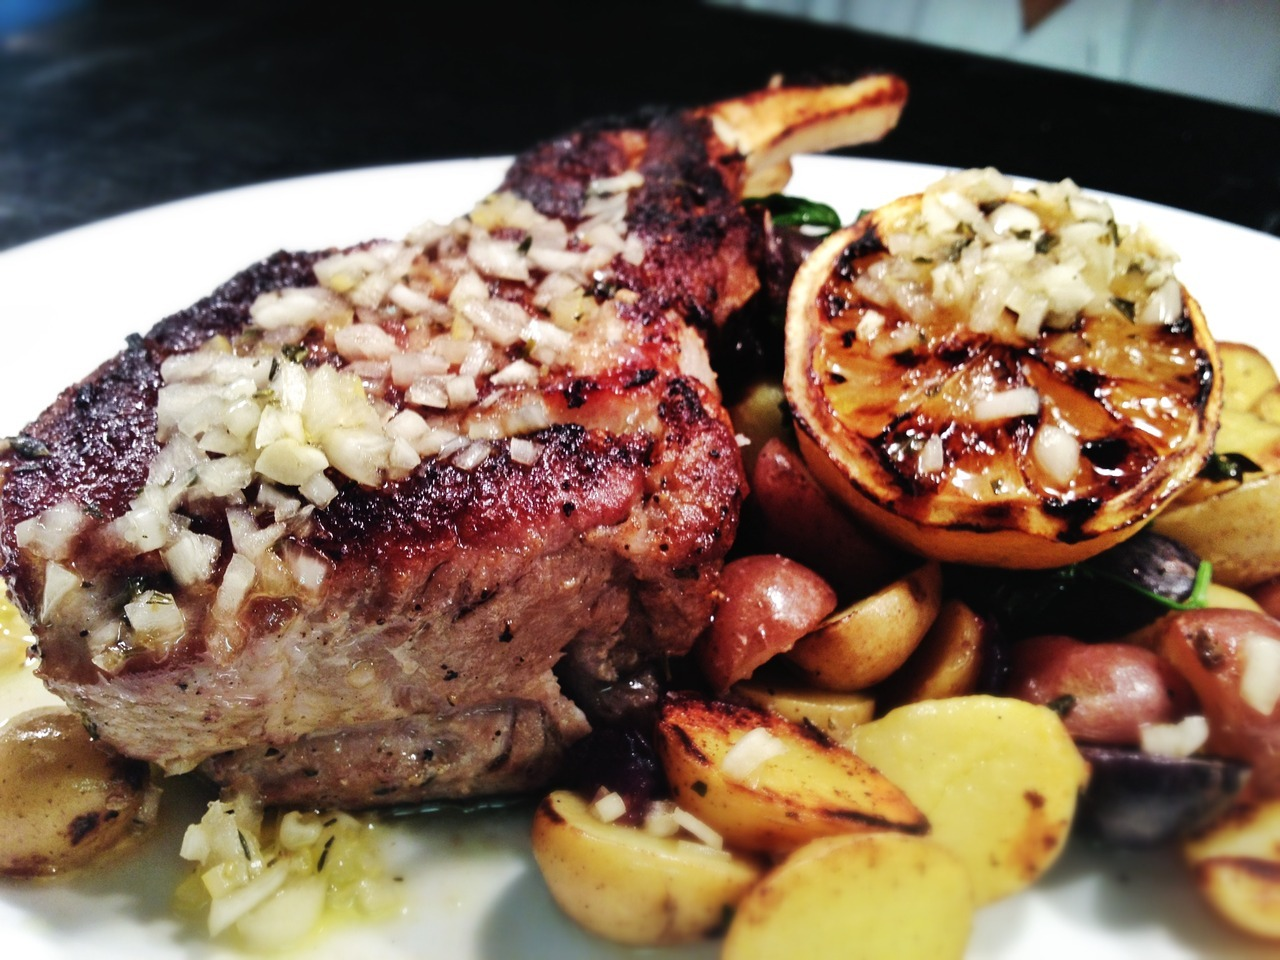 Featured non-fish item of the day:  DOUBLE CUT PORK CHOP Heirloom Potato, Agro Dolce for $28.